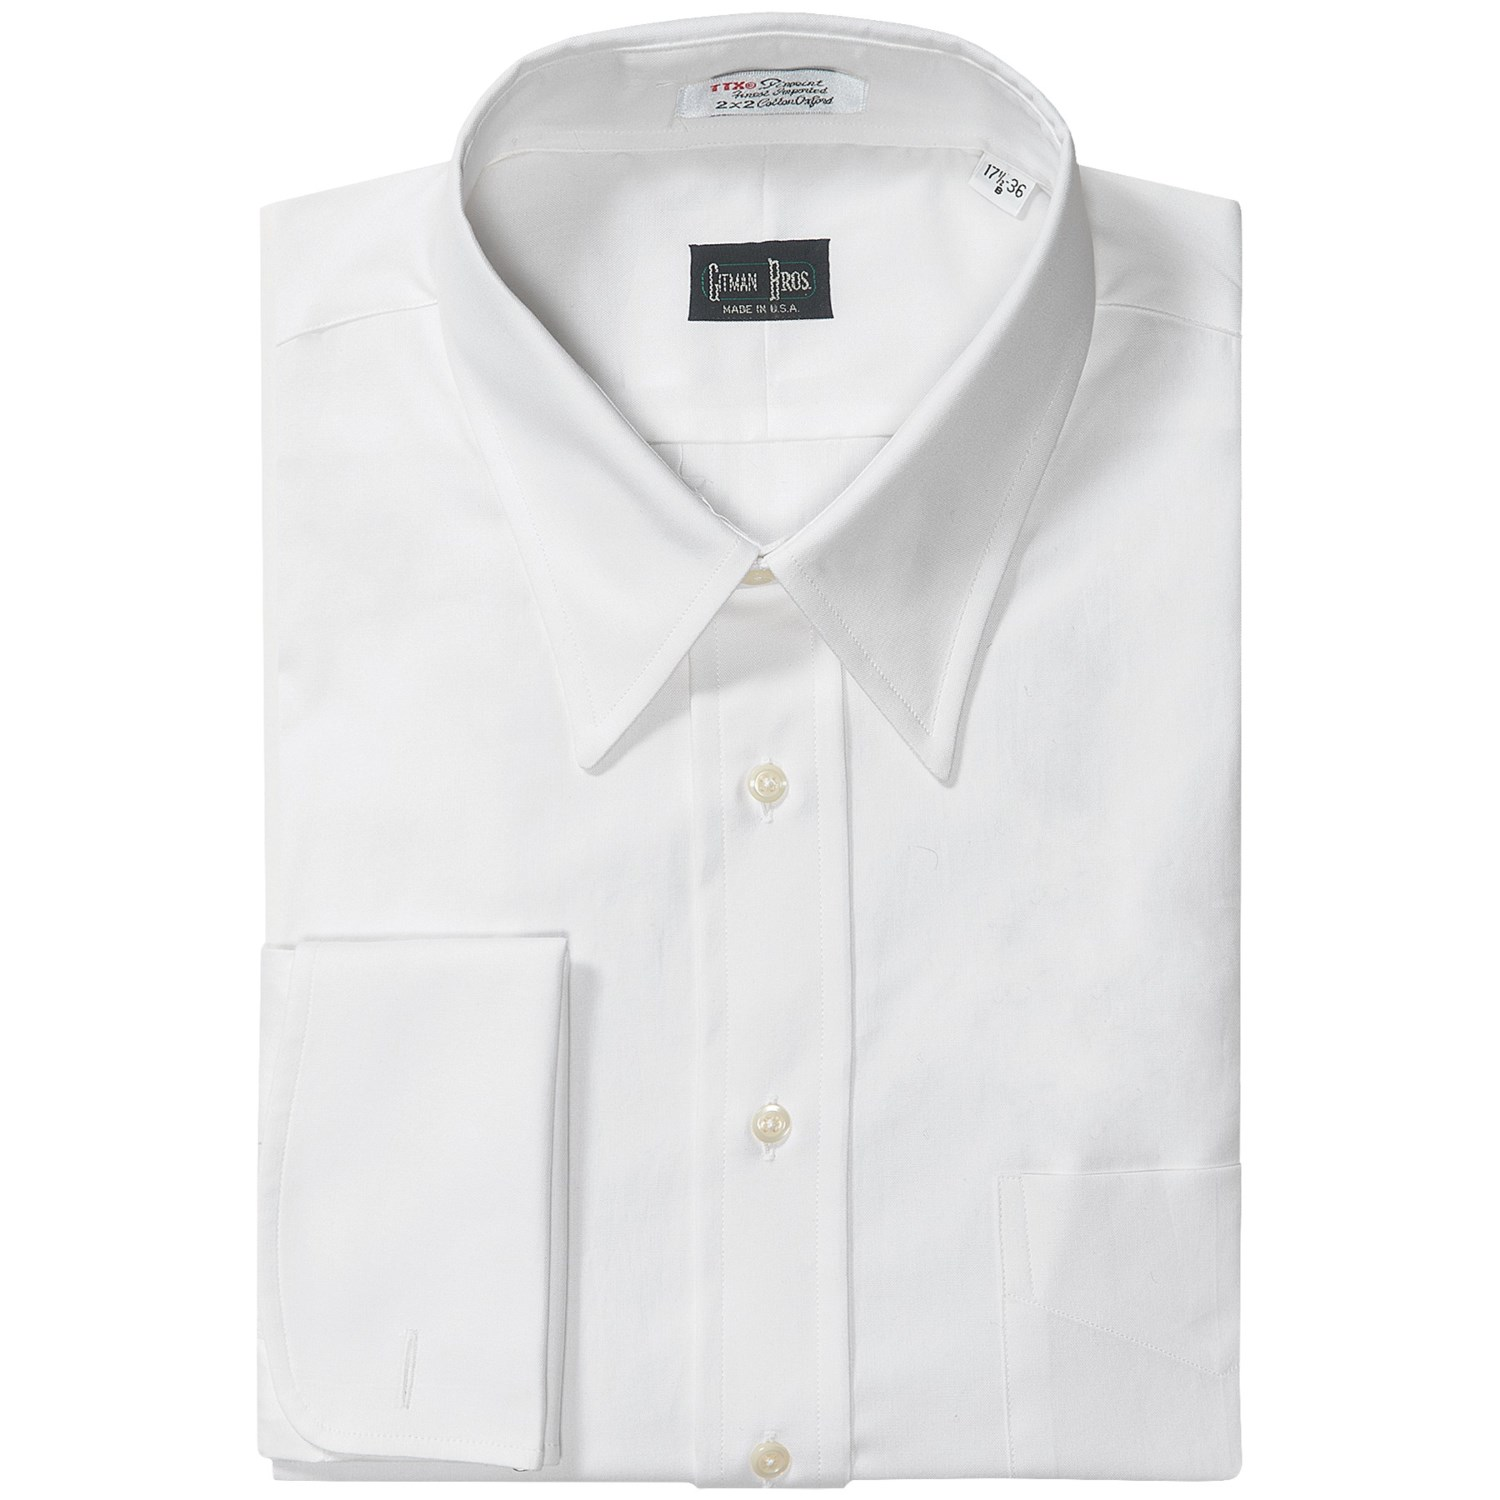 French Cuff Dress Shirts For Men Nymsuitscom Tattoo